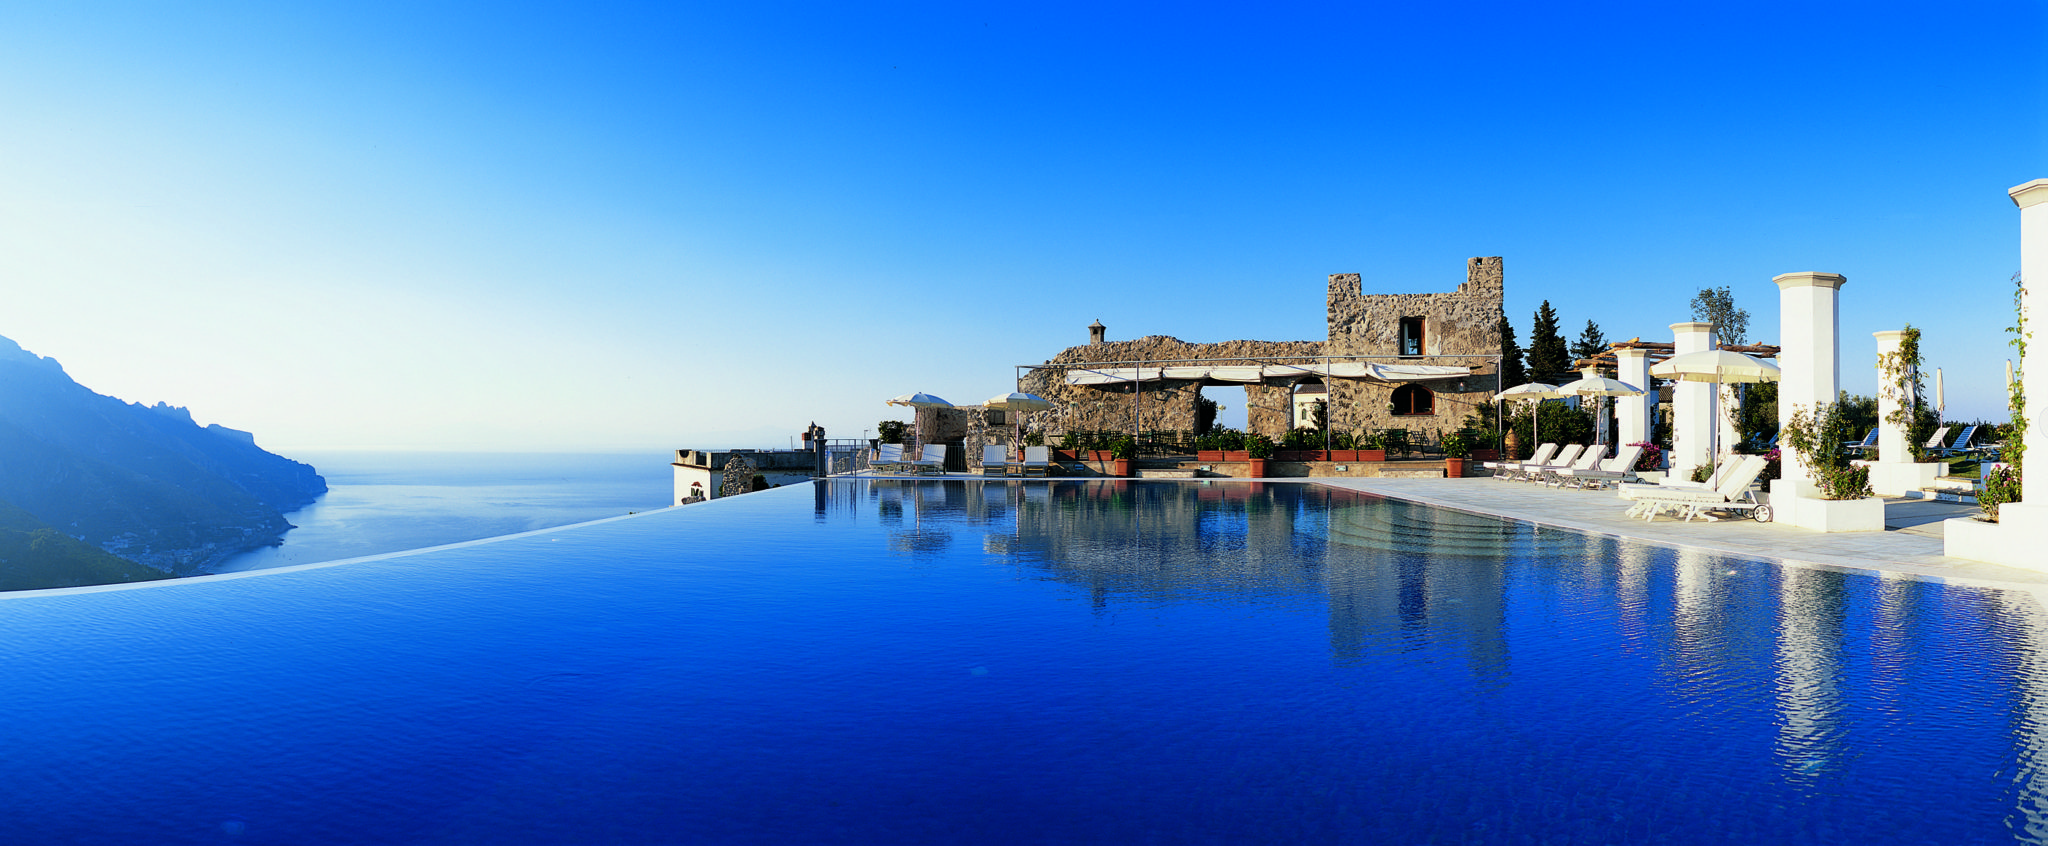 Hotel caruso italy infinity pools for Hotels in ravello with swimming pool